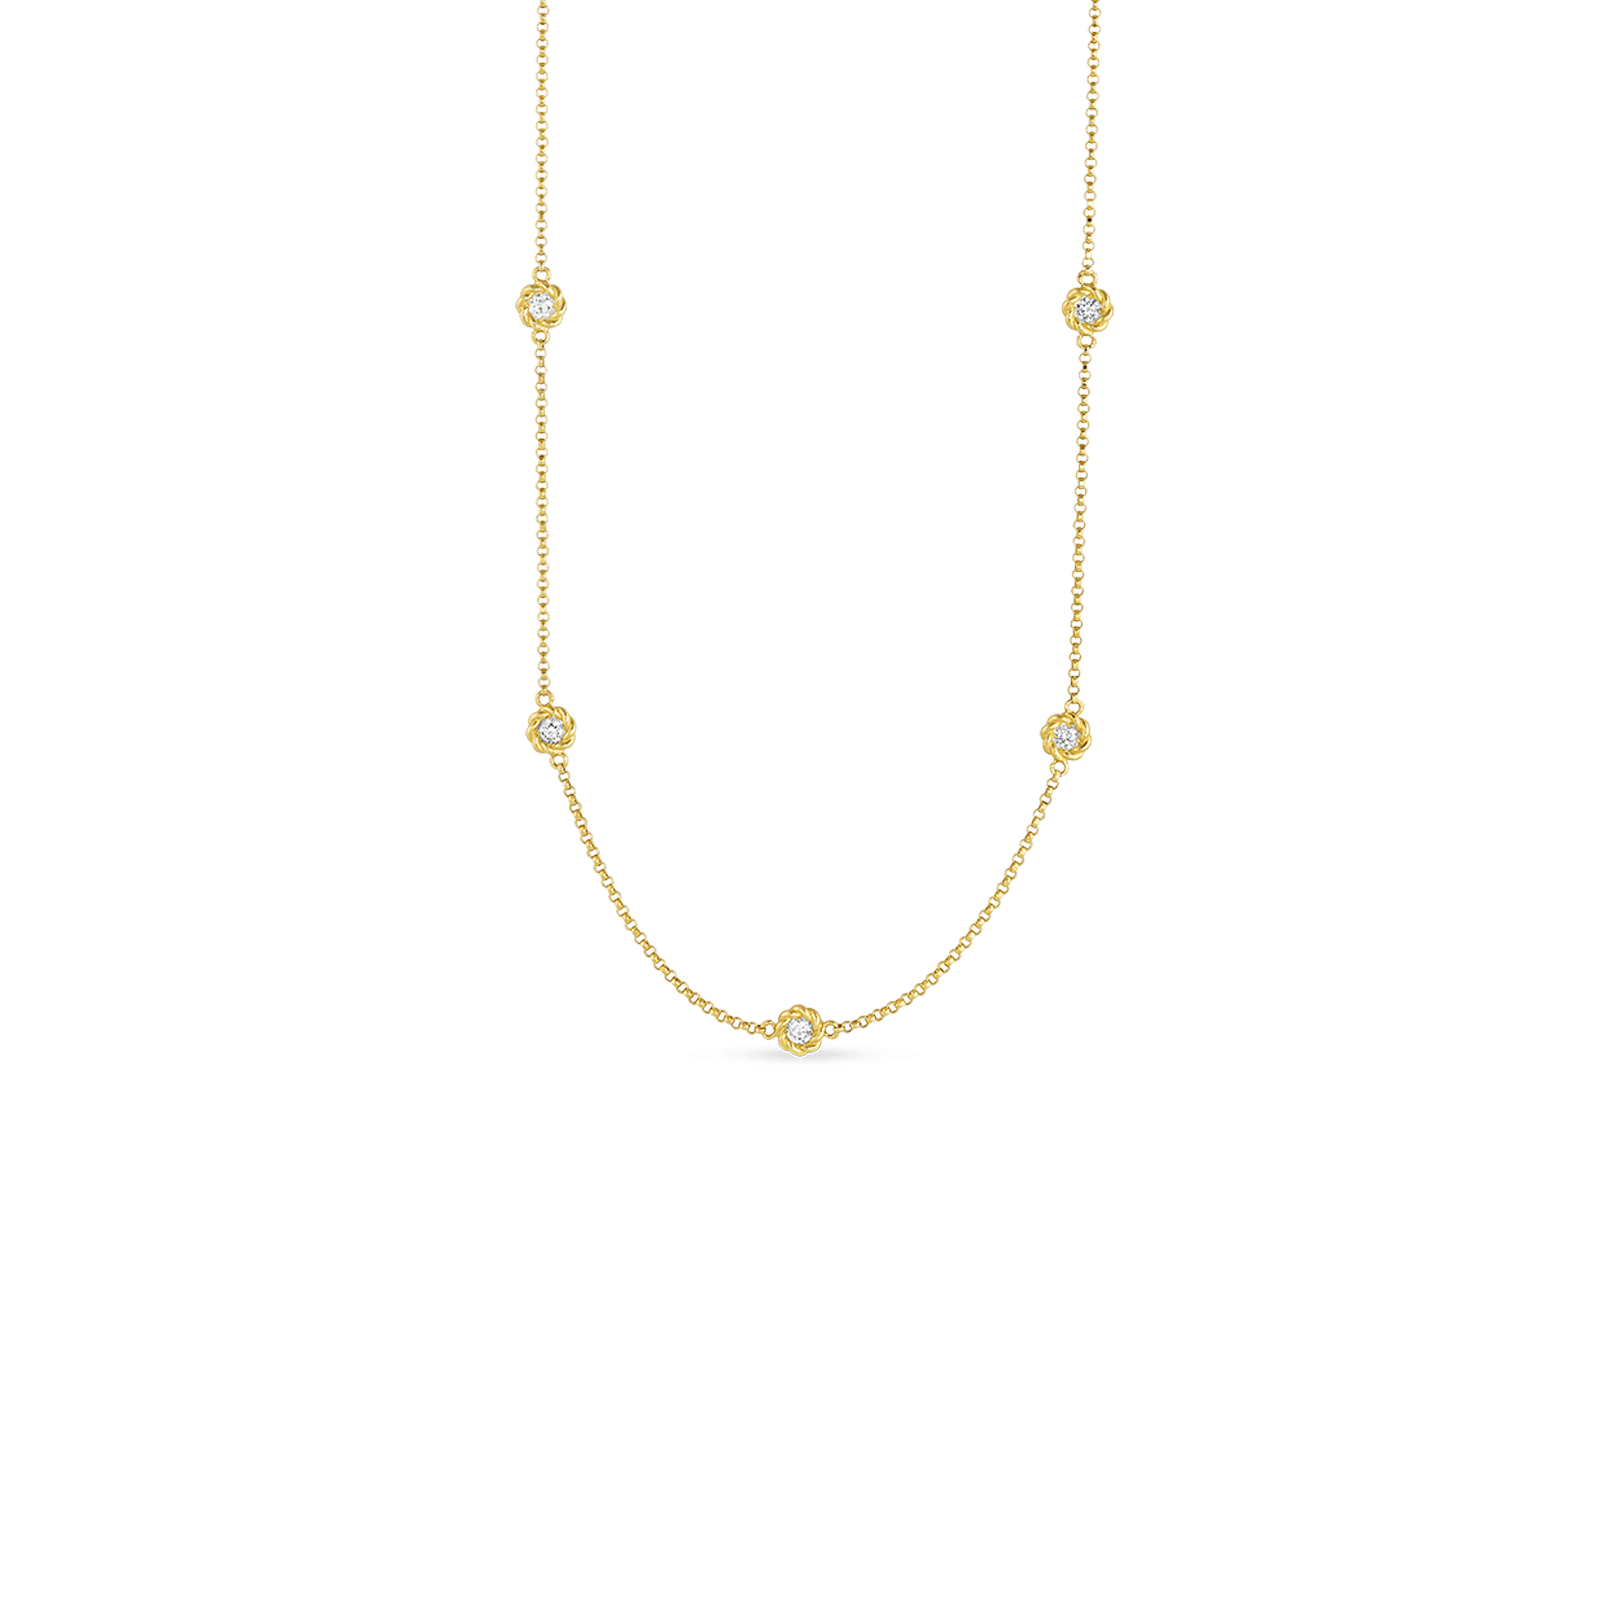 New Barocco 18K Yellow Gold Diamond Station Necklace